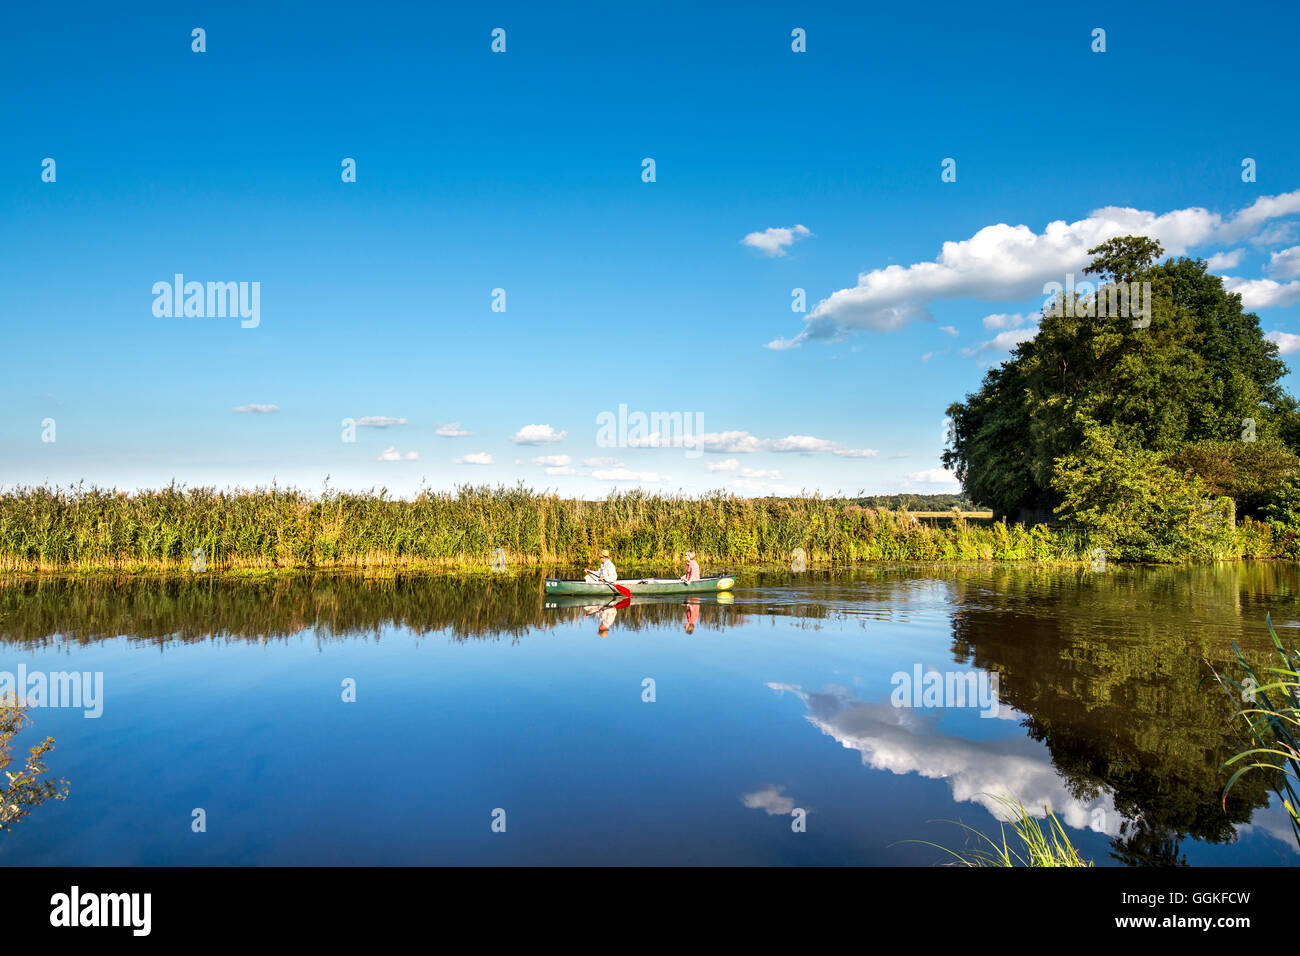 Canoe on the river Hamme, Worpswede, Teufelsmoor, Lower Saxony, Germany - Stock Image